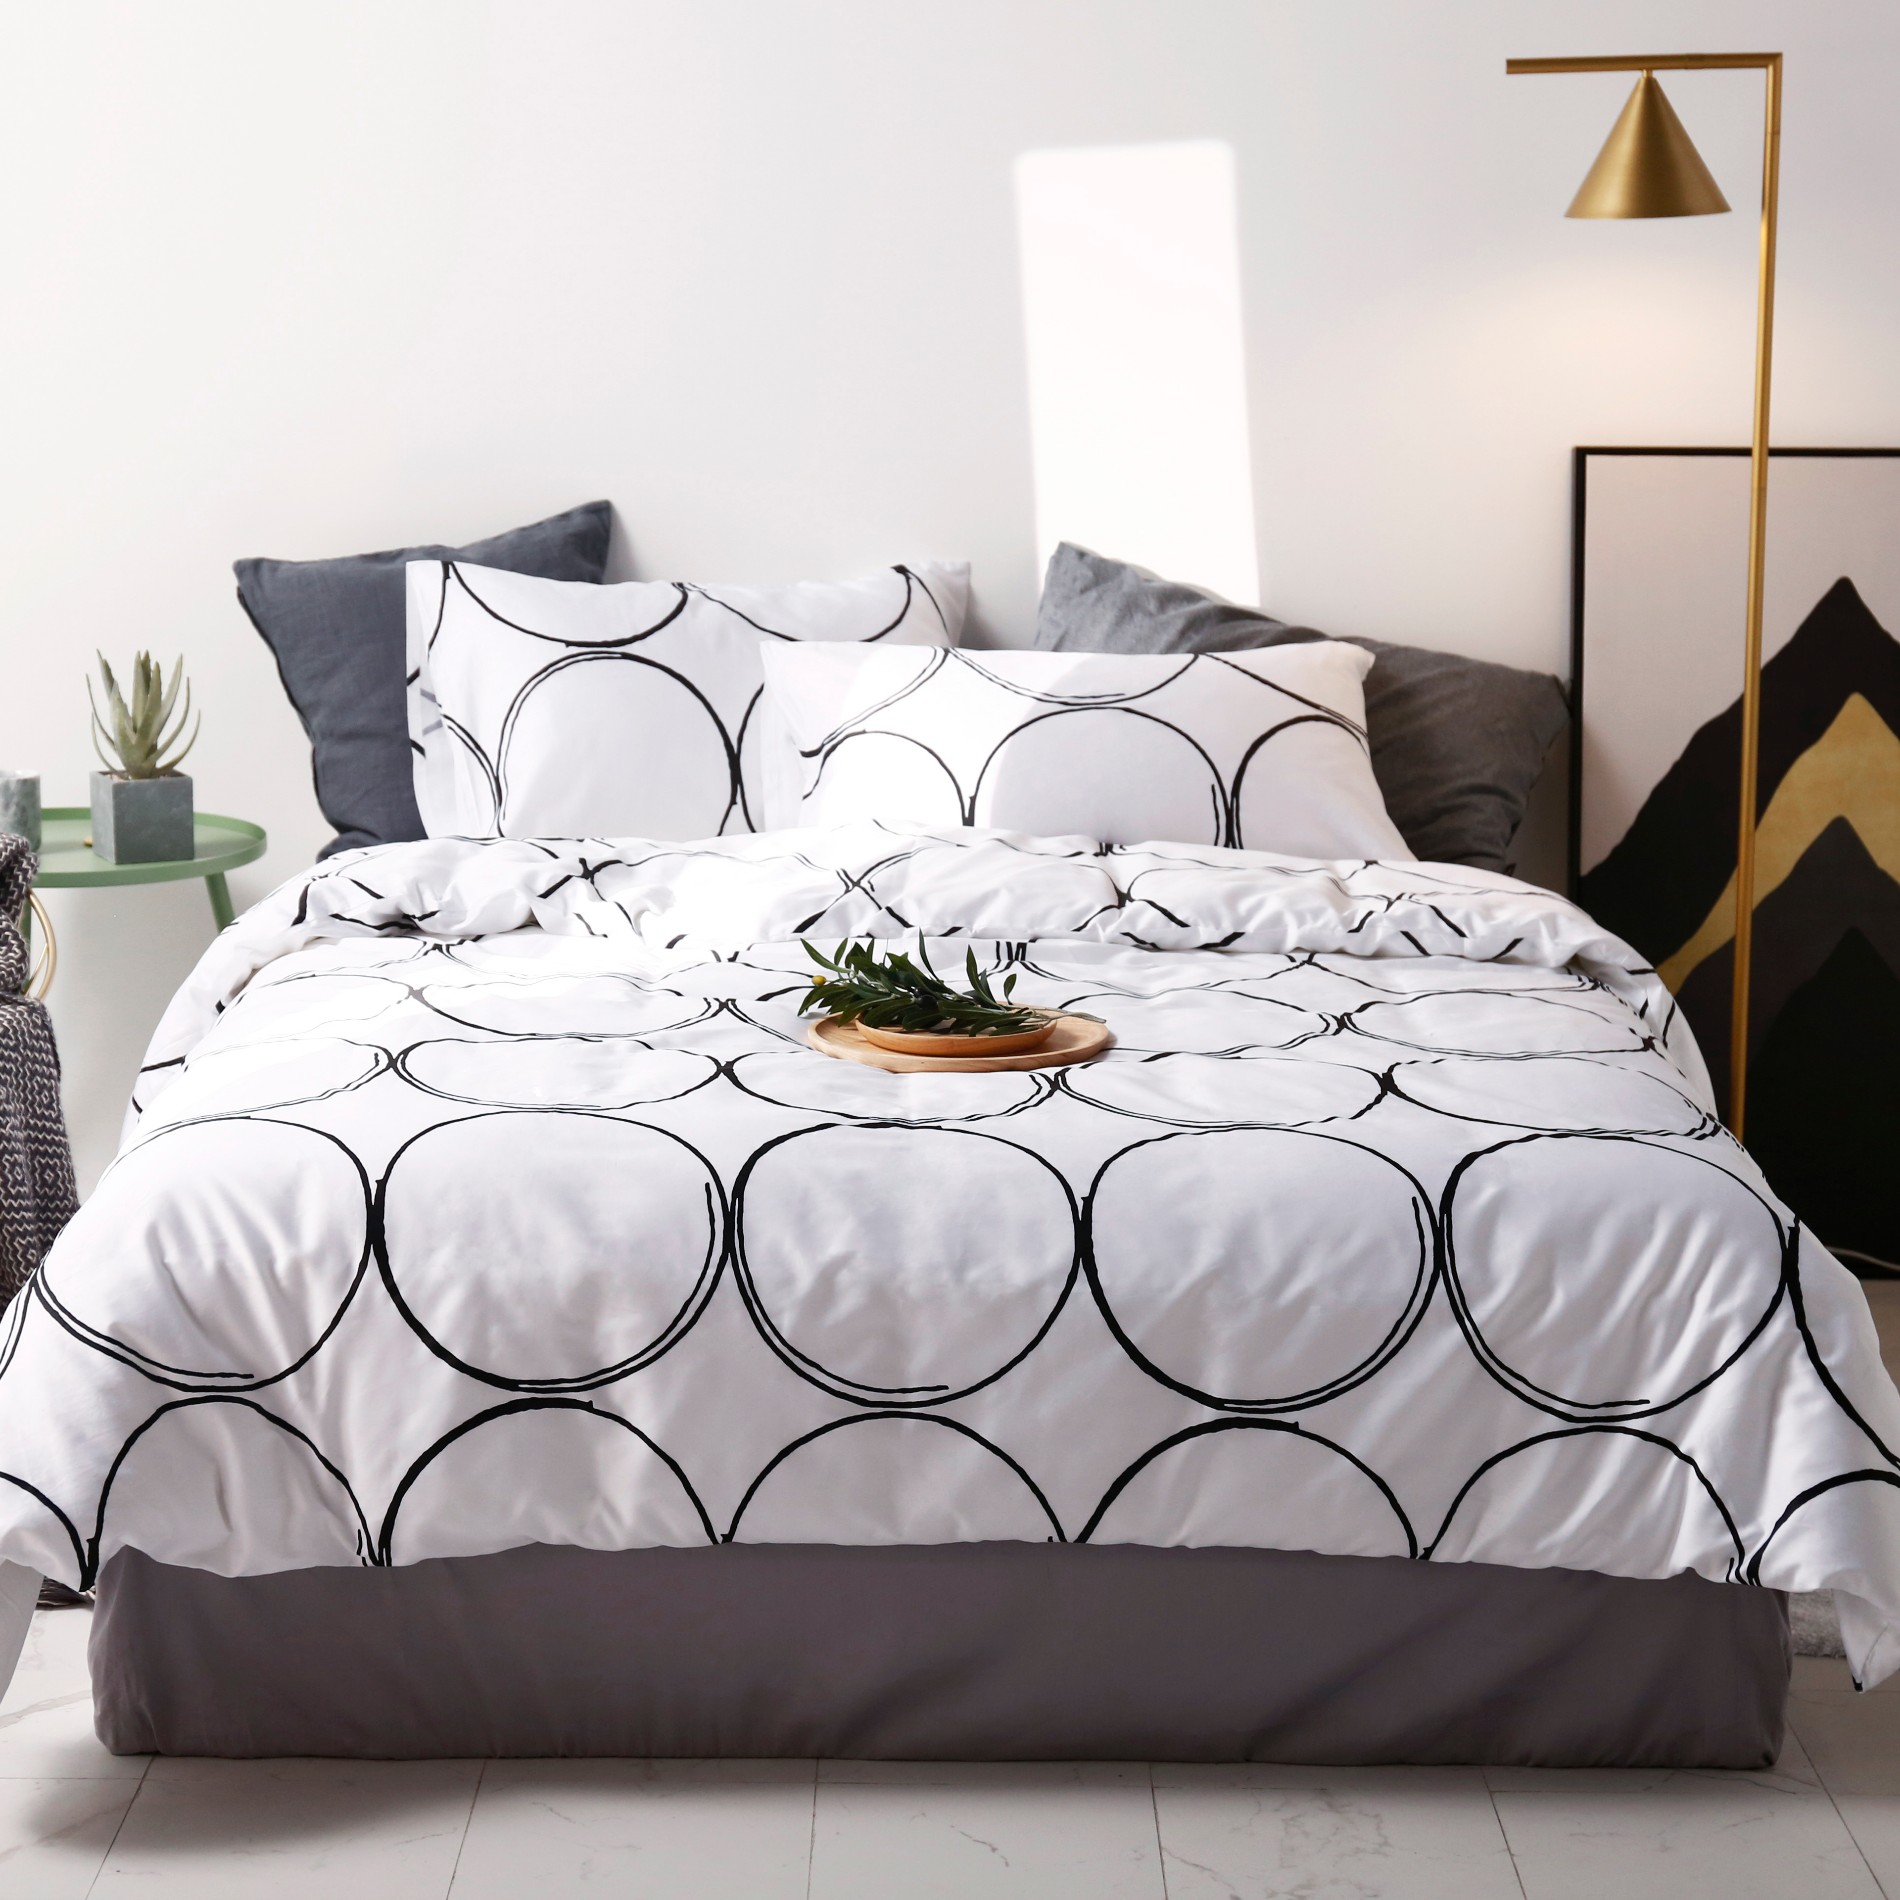 Cotton Printed Duvet Covers Manufacturers, Cotton Printed Duvet Covers Factory, Supply Cotton Printed Duvet Covers